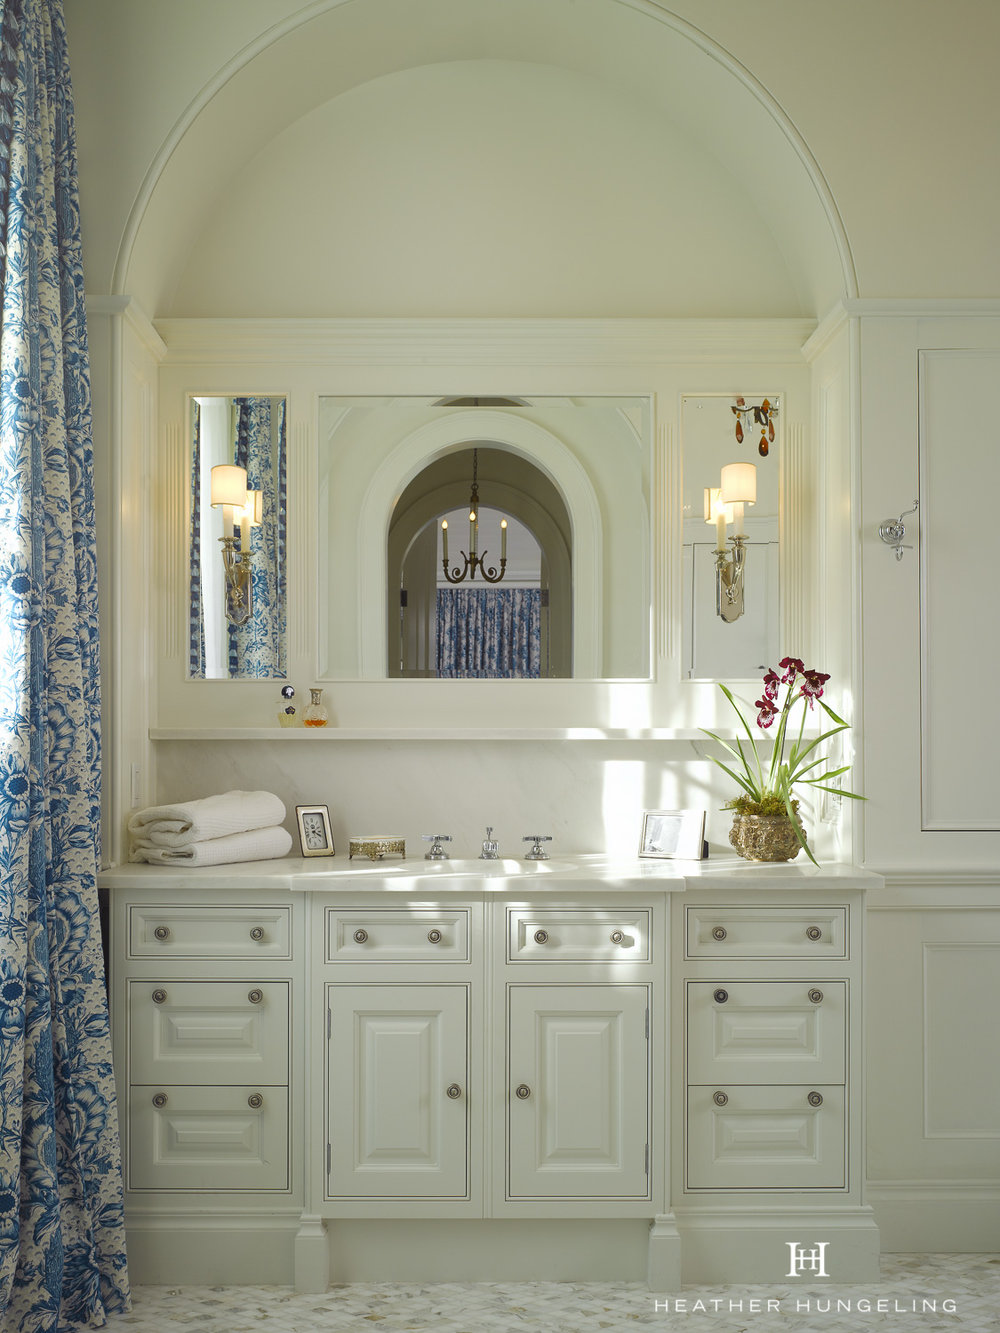 View the master bathroom for this project